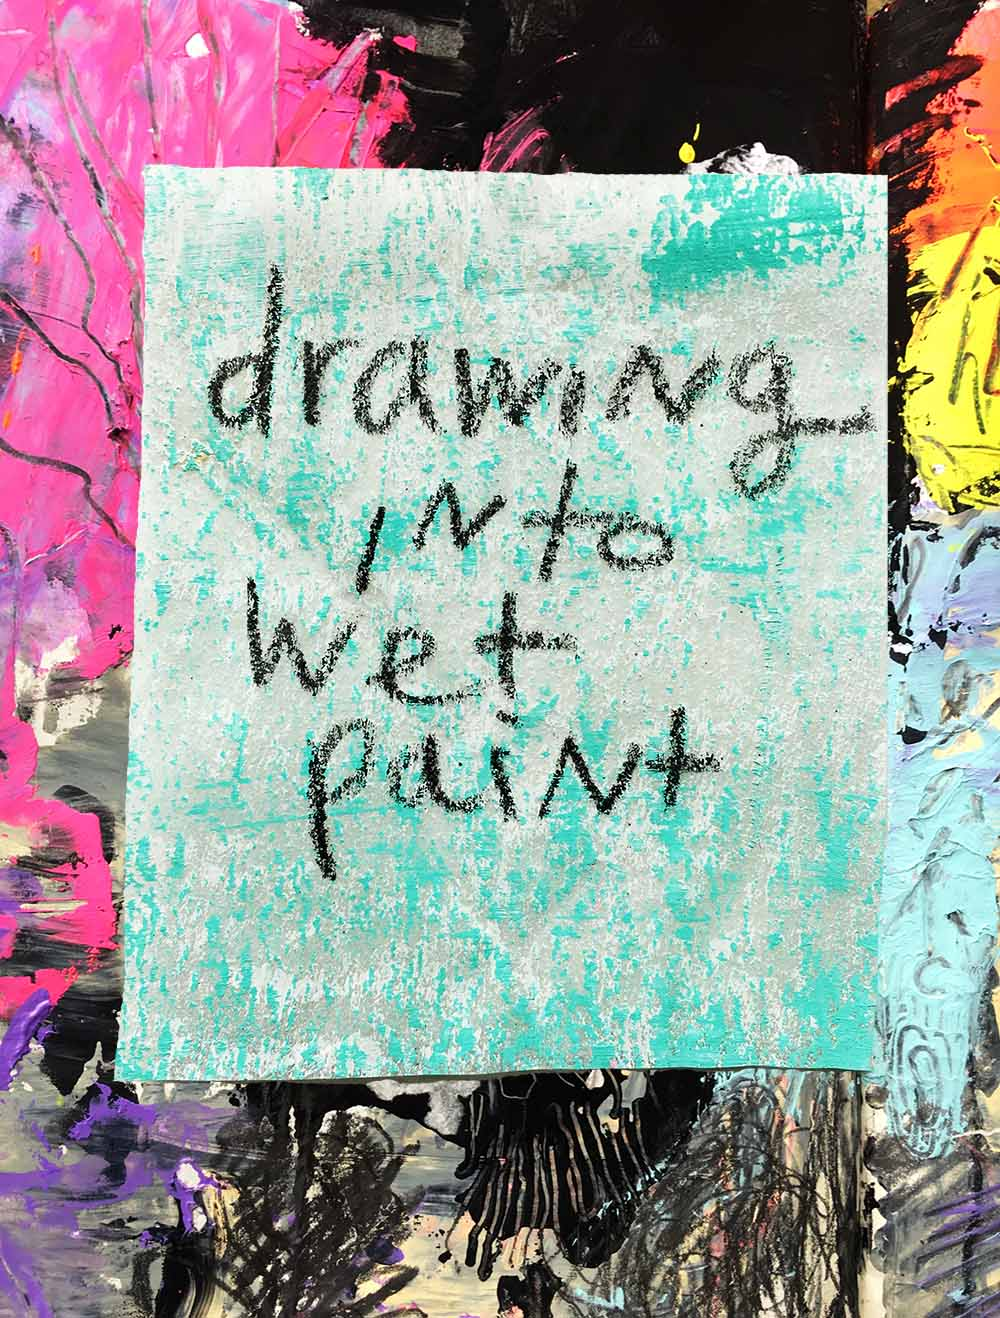 Level up your art by drawing into wet paint